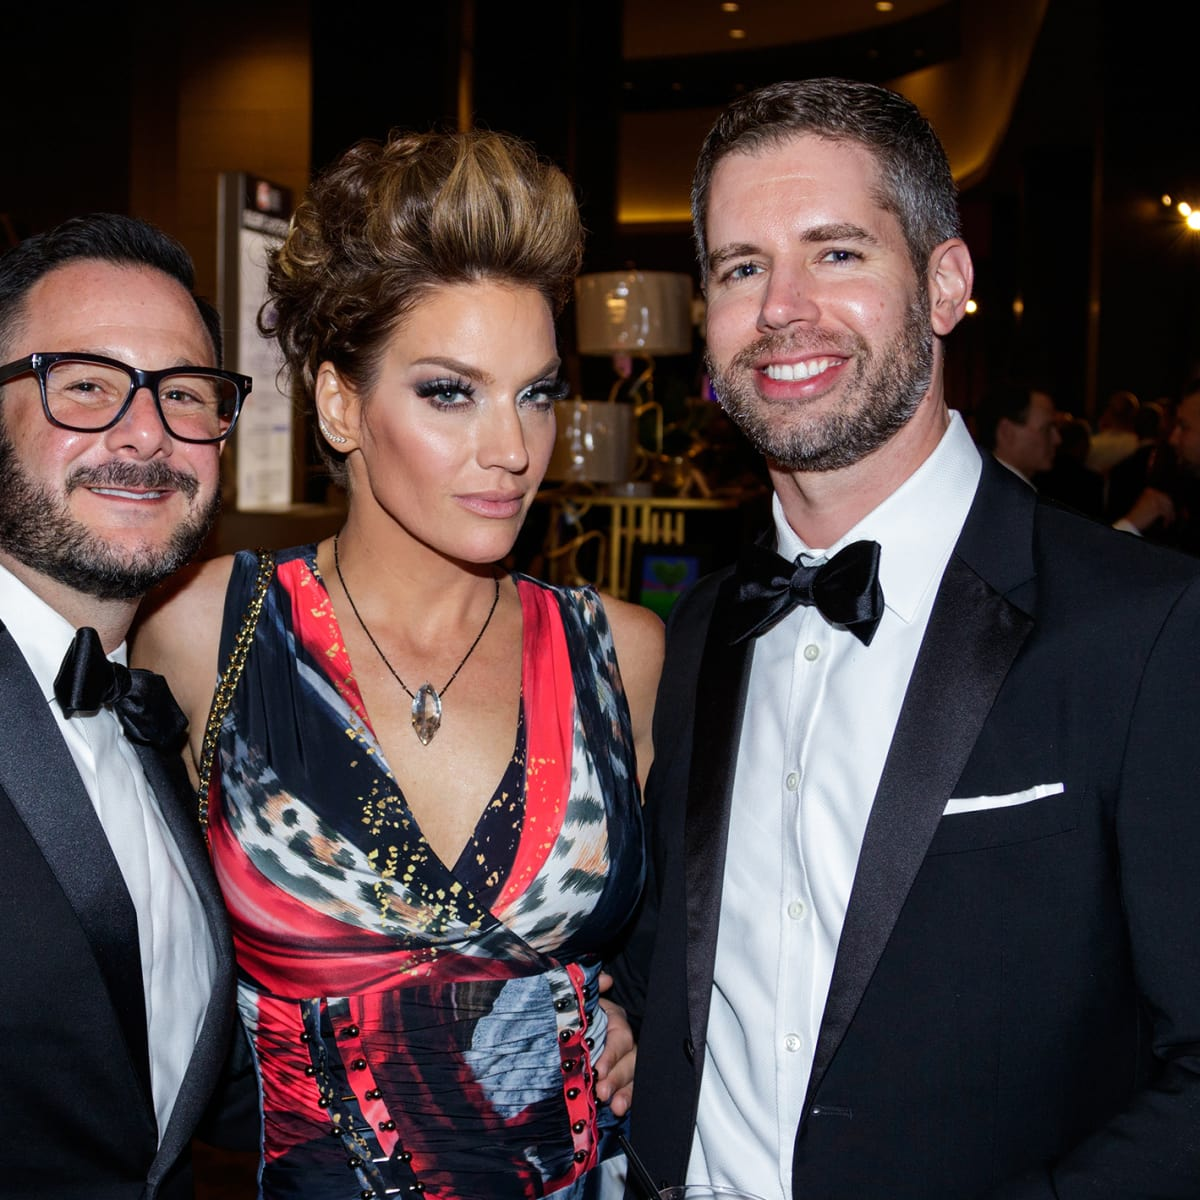 Randy Mills, Cary Deuber, Daryl Sinkule at House of DIFFA 2018